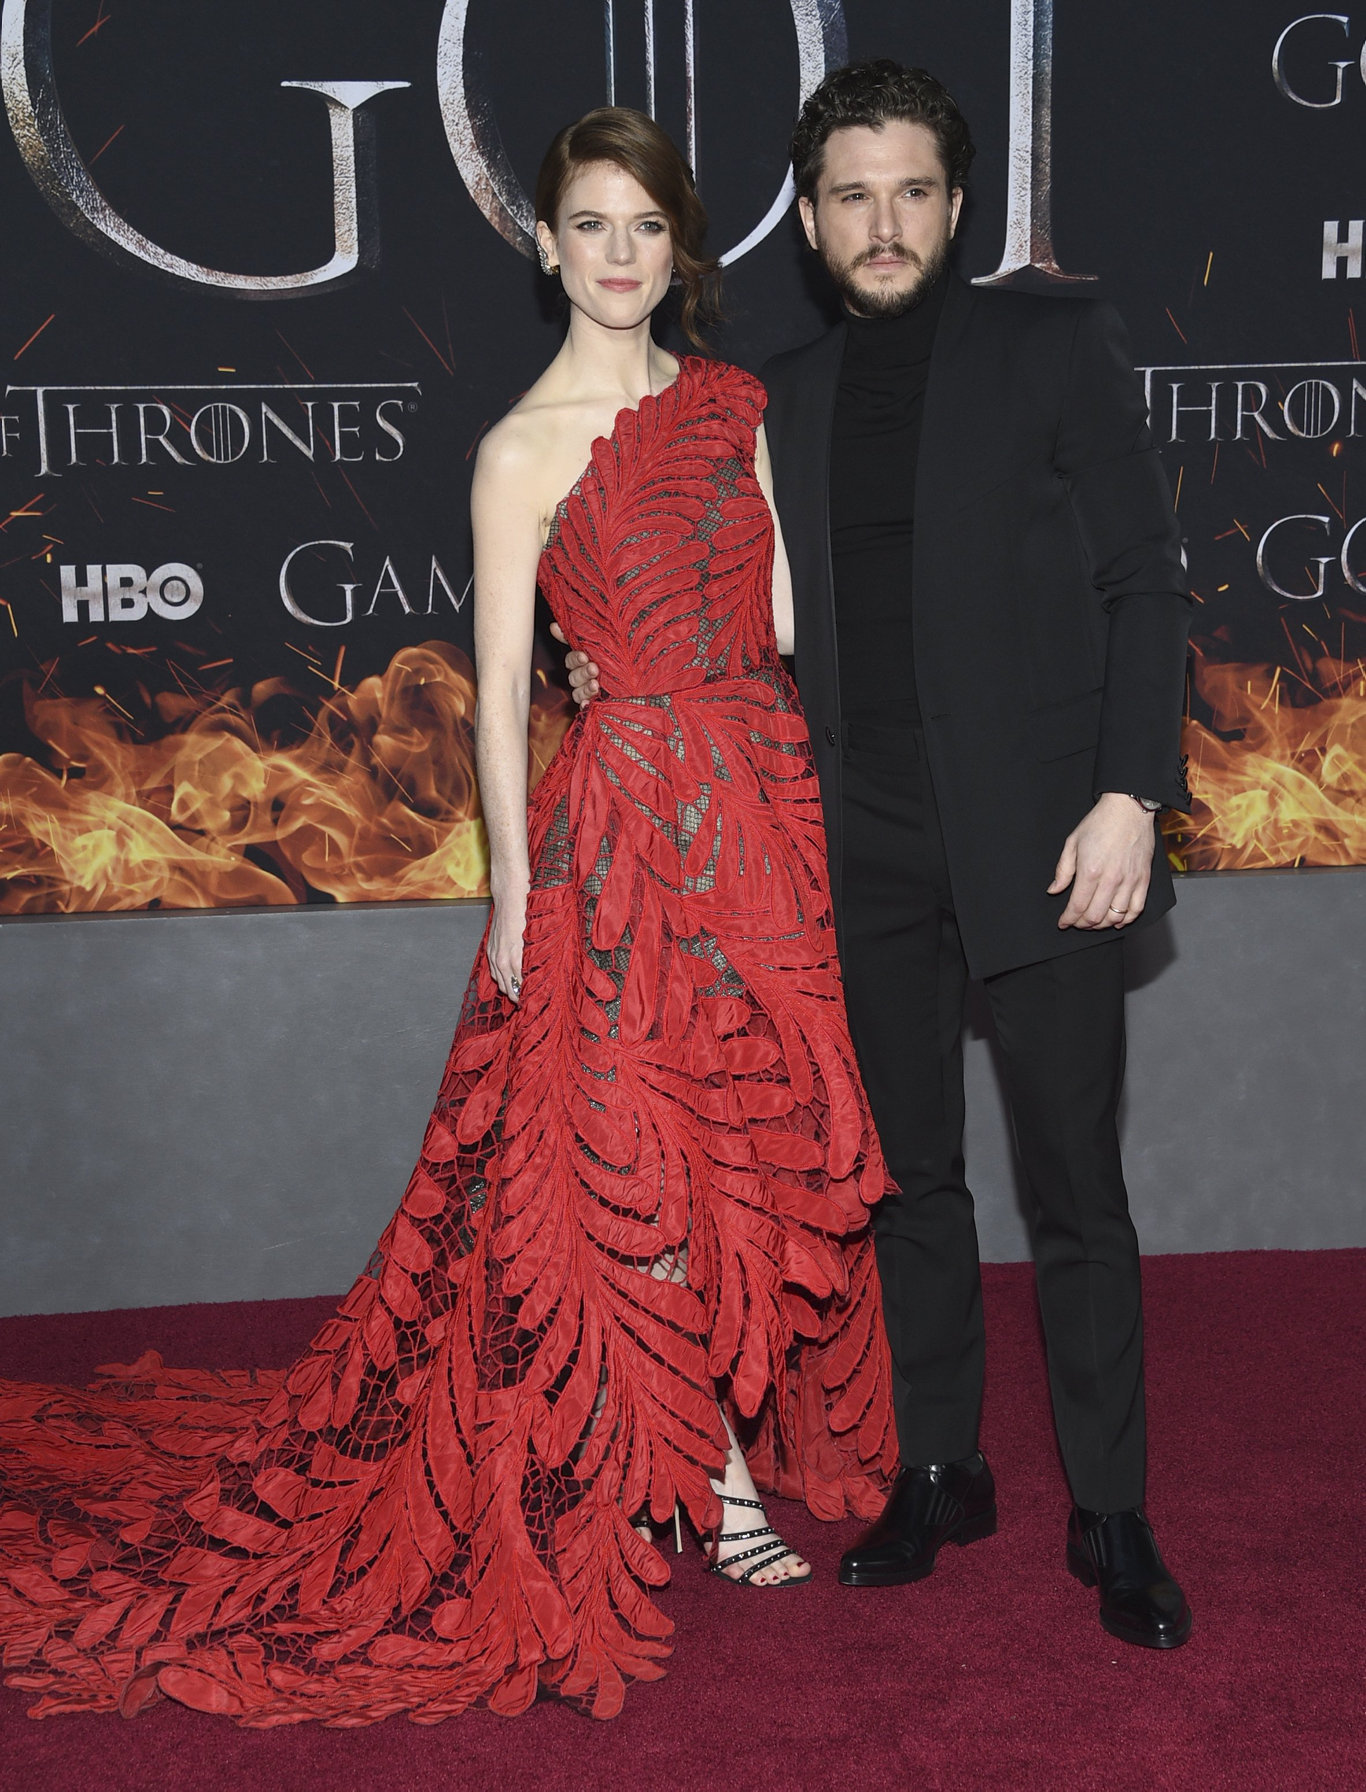 Rose Leslie, left, and Kit Harington attend HBO's Game of Thrones final season premiere at Radio City Music Hall in New York.